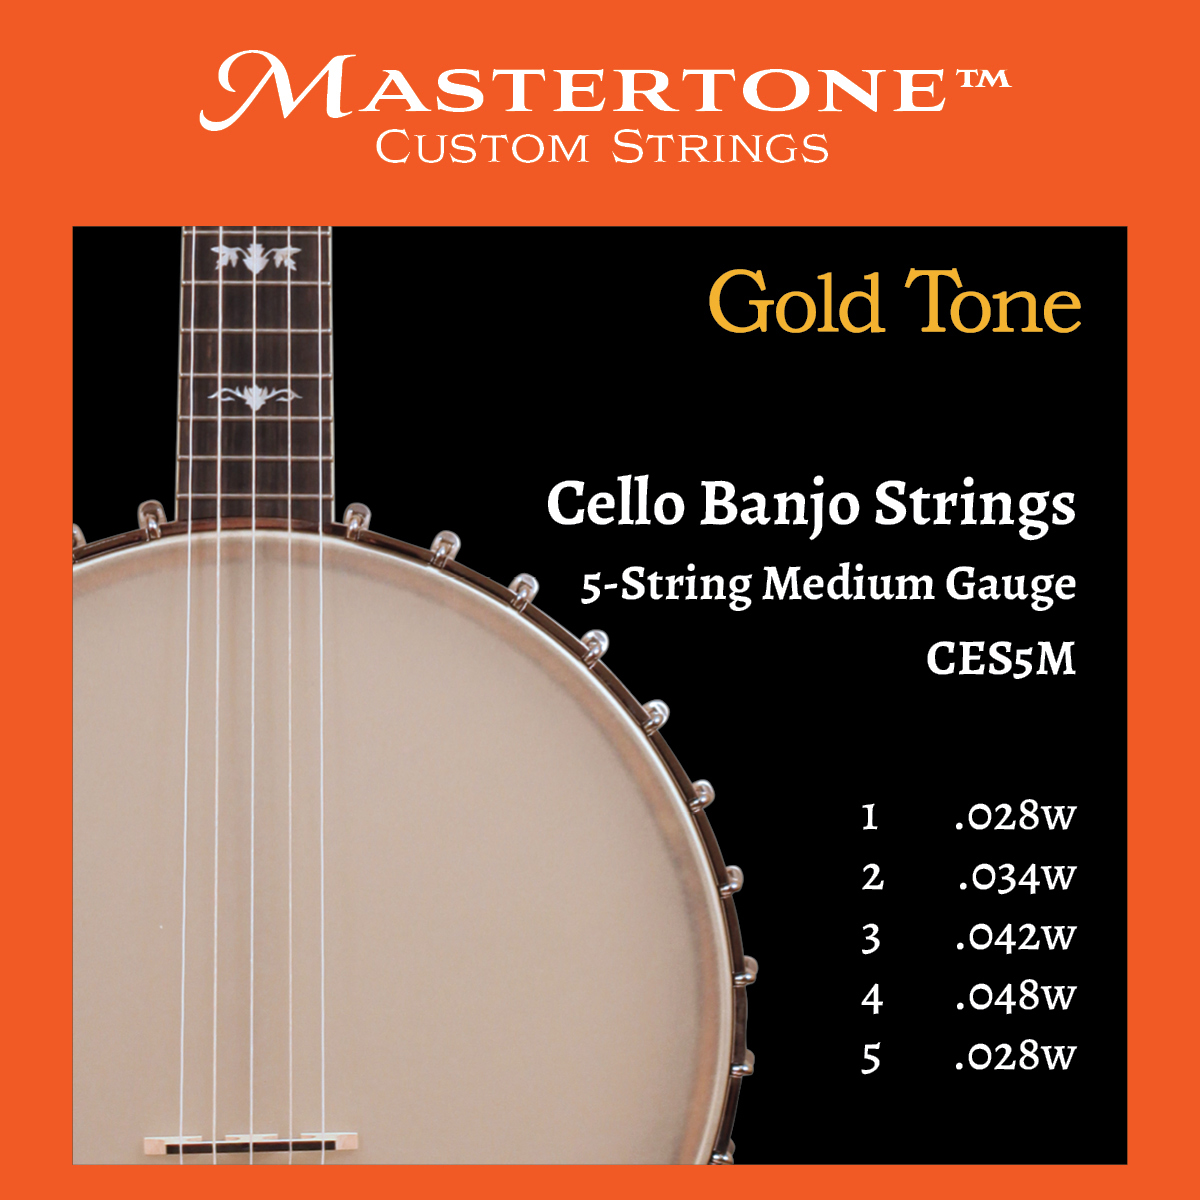 Banjo Cello 5-String Medium Gauge Strings